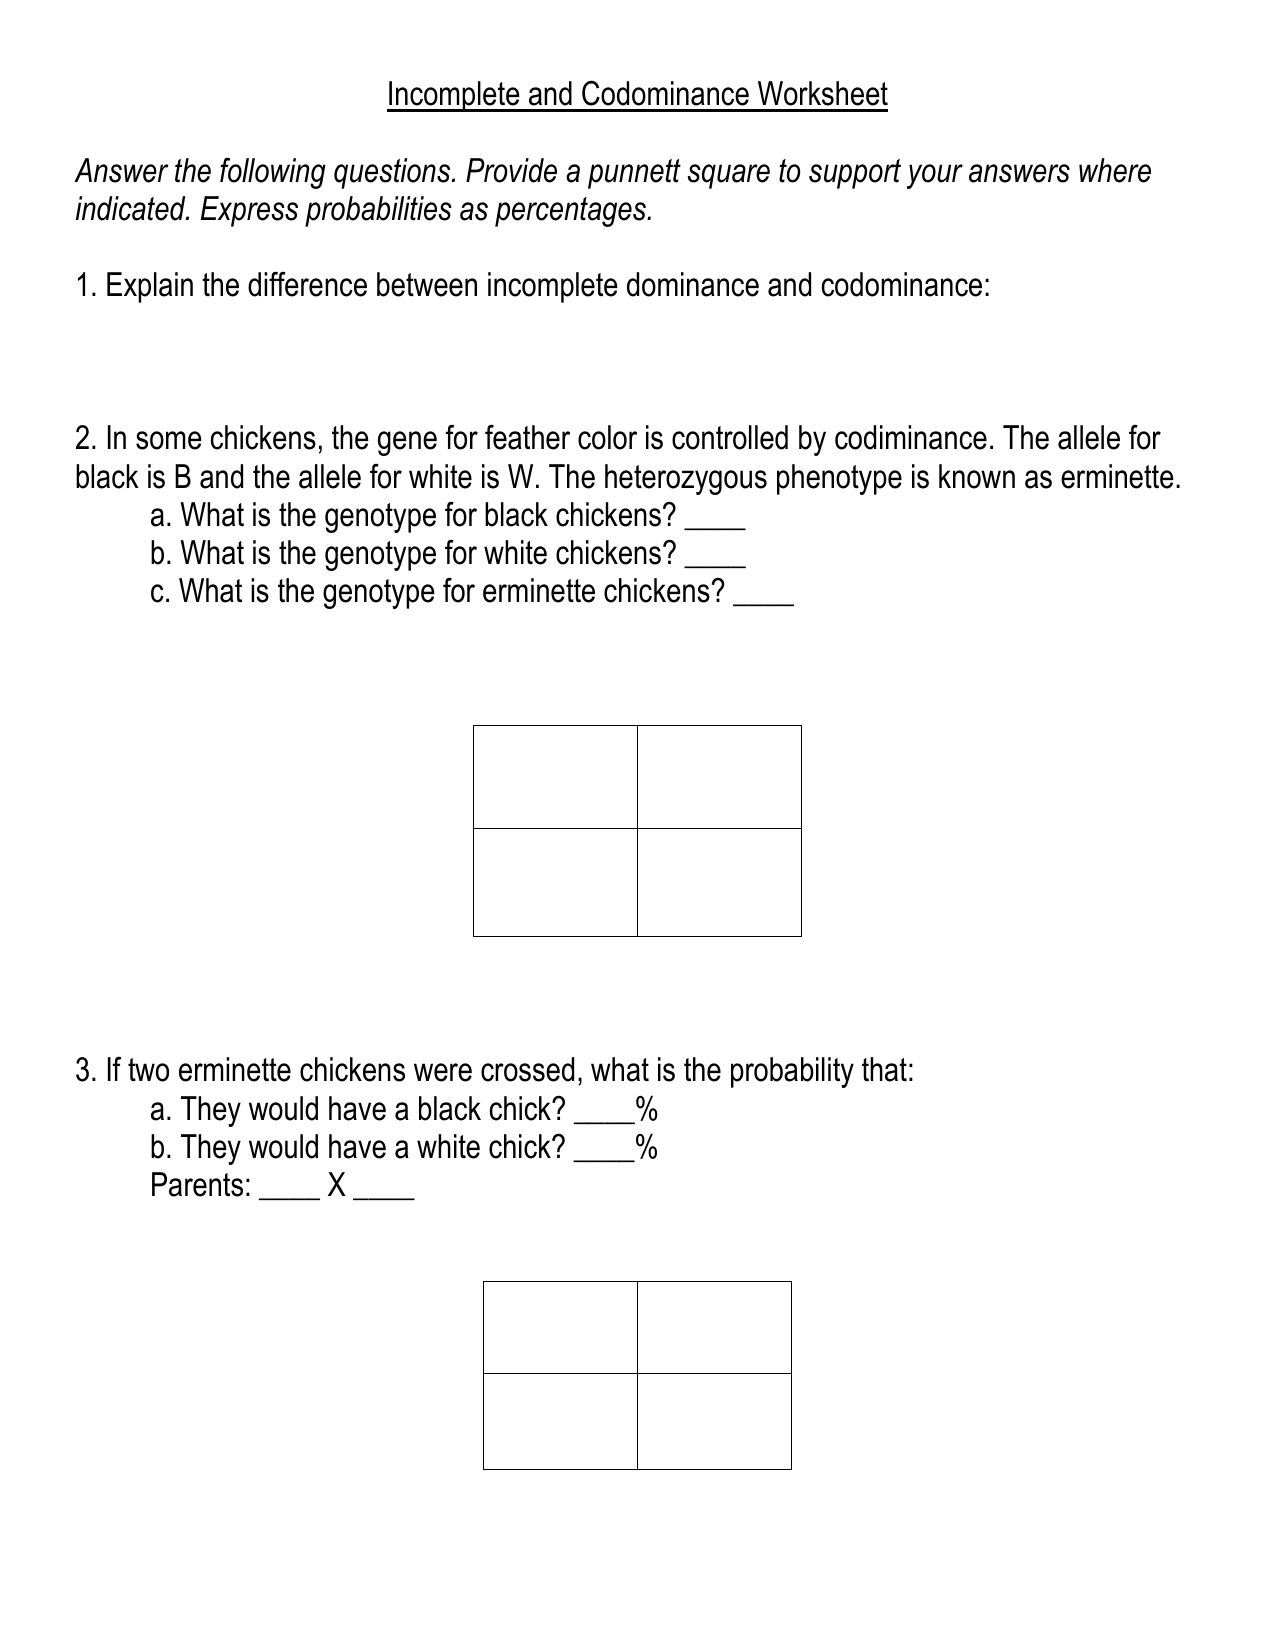 Incomplete And Codominance Worksheet Doc